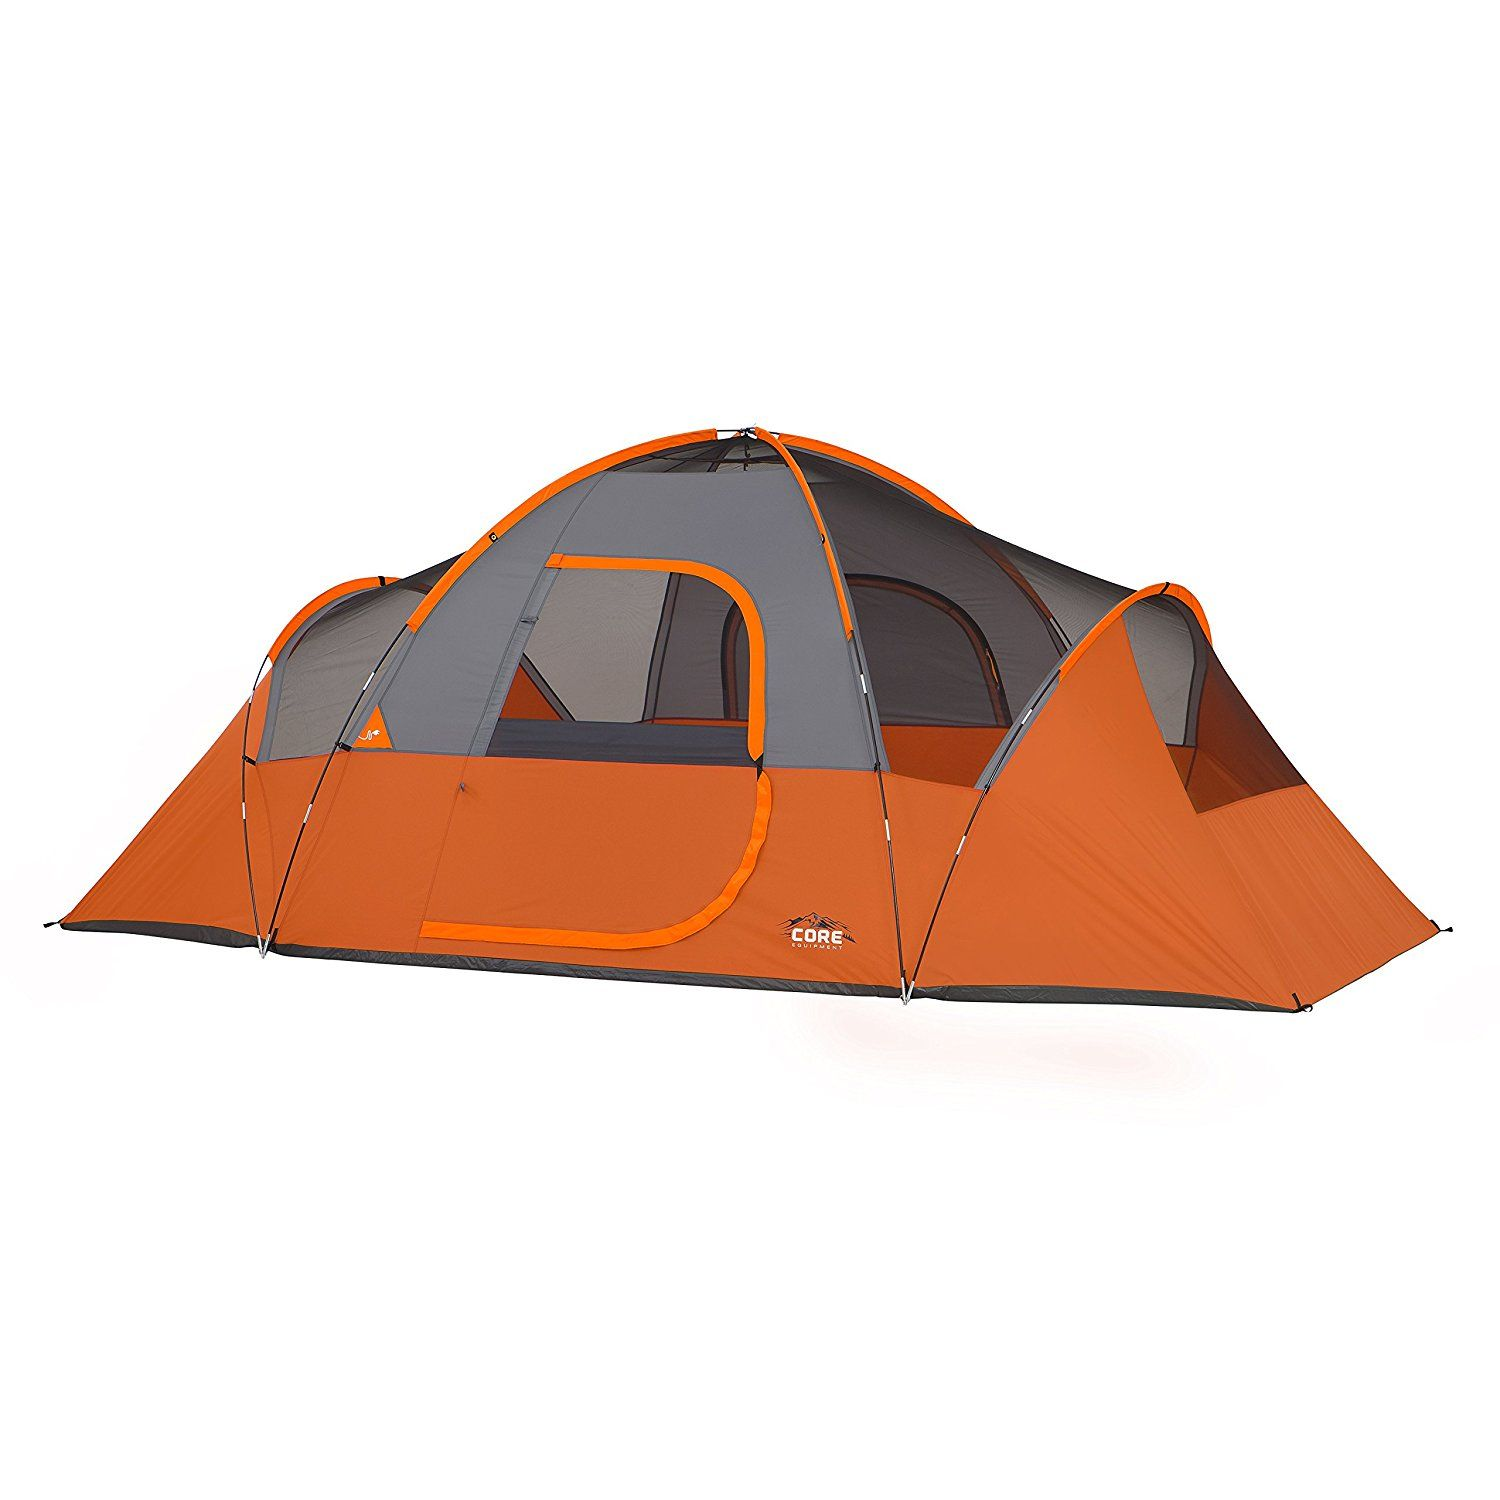 Tent pop up tent tents for sale camping tents coleman tents camping gear camping equipment camping